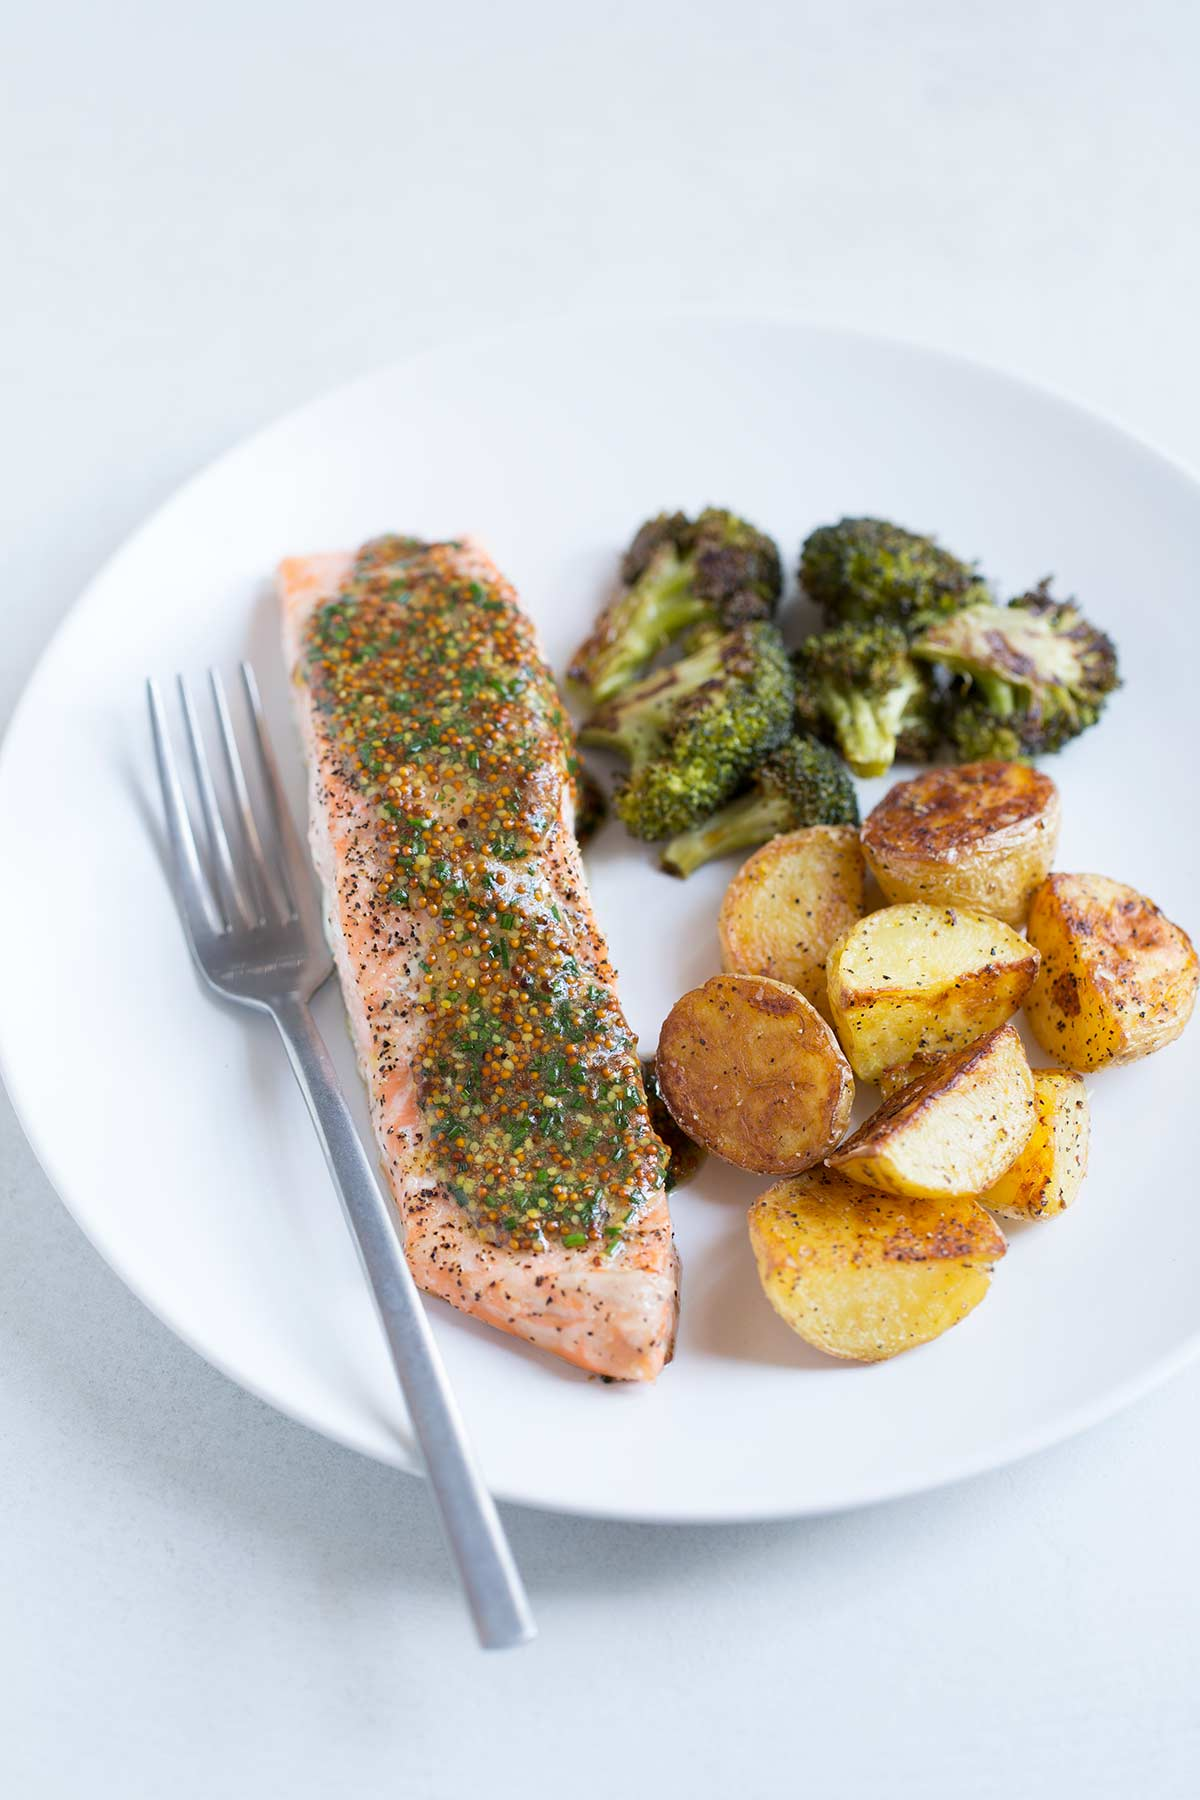 A simple baked salmon recipe topped with a mustard-chive sauce, paired with roasted potatoes and roasted broccoli.